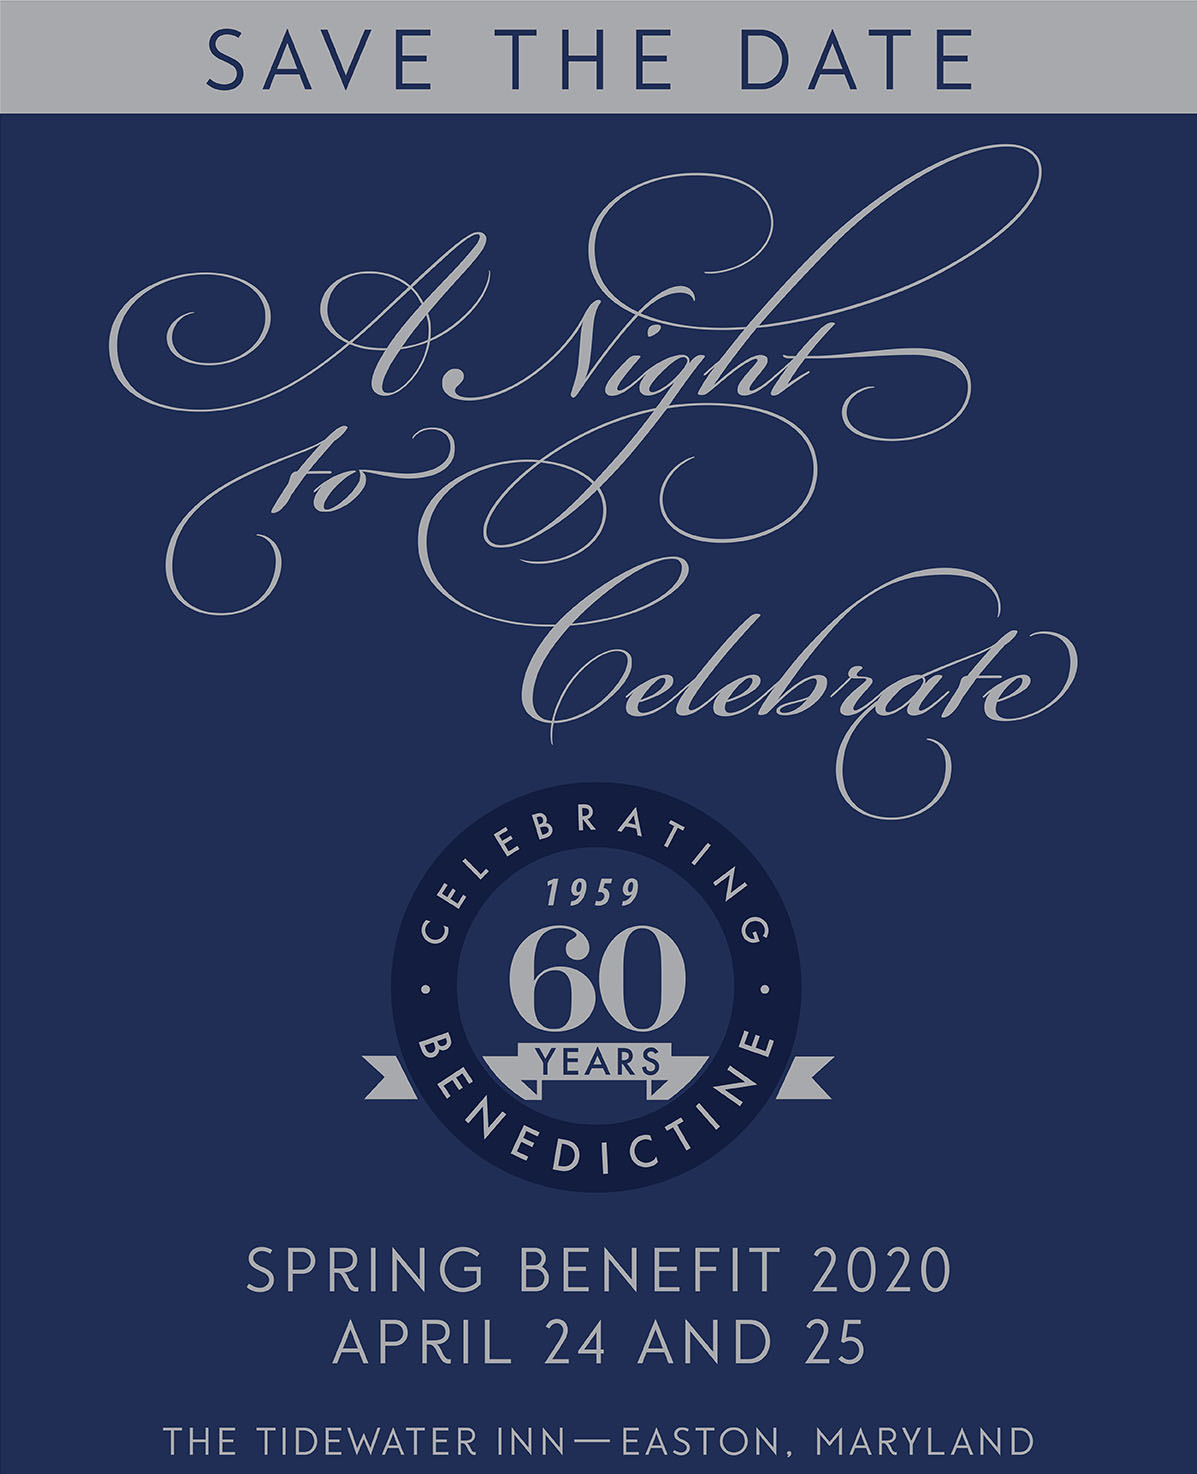 Benedictine's 60th Anniversary Spring Benefit Gala set for April 25